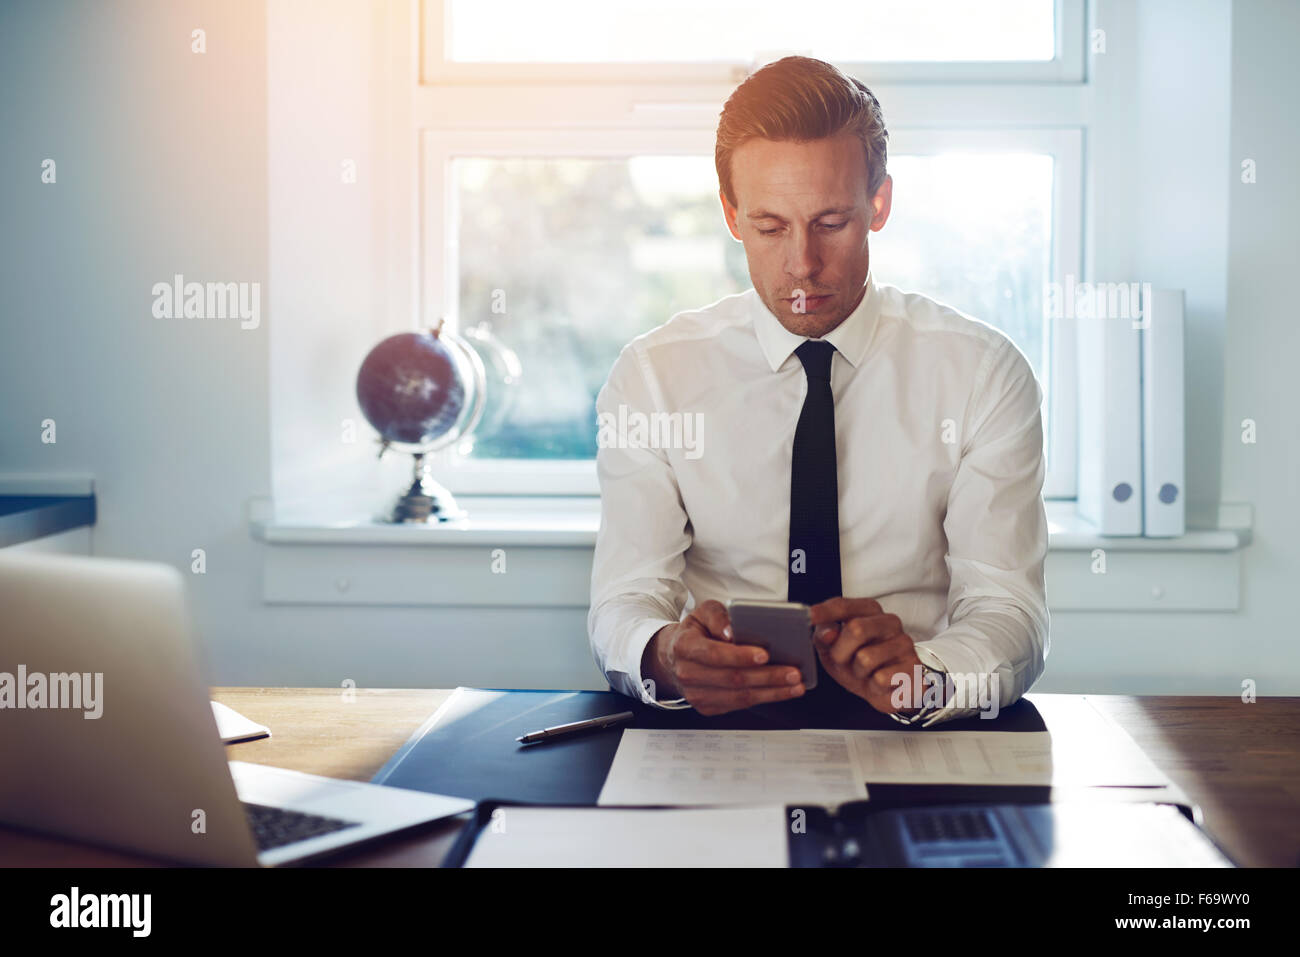 Executive business man texting on his phone and checking mail while sitting at his desk at the office - Stock Image